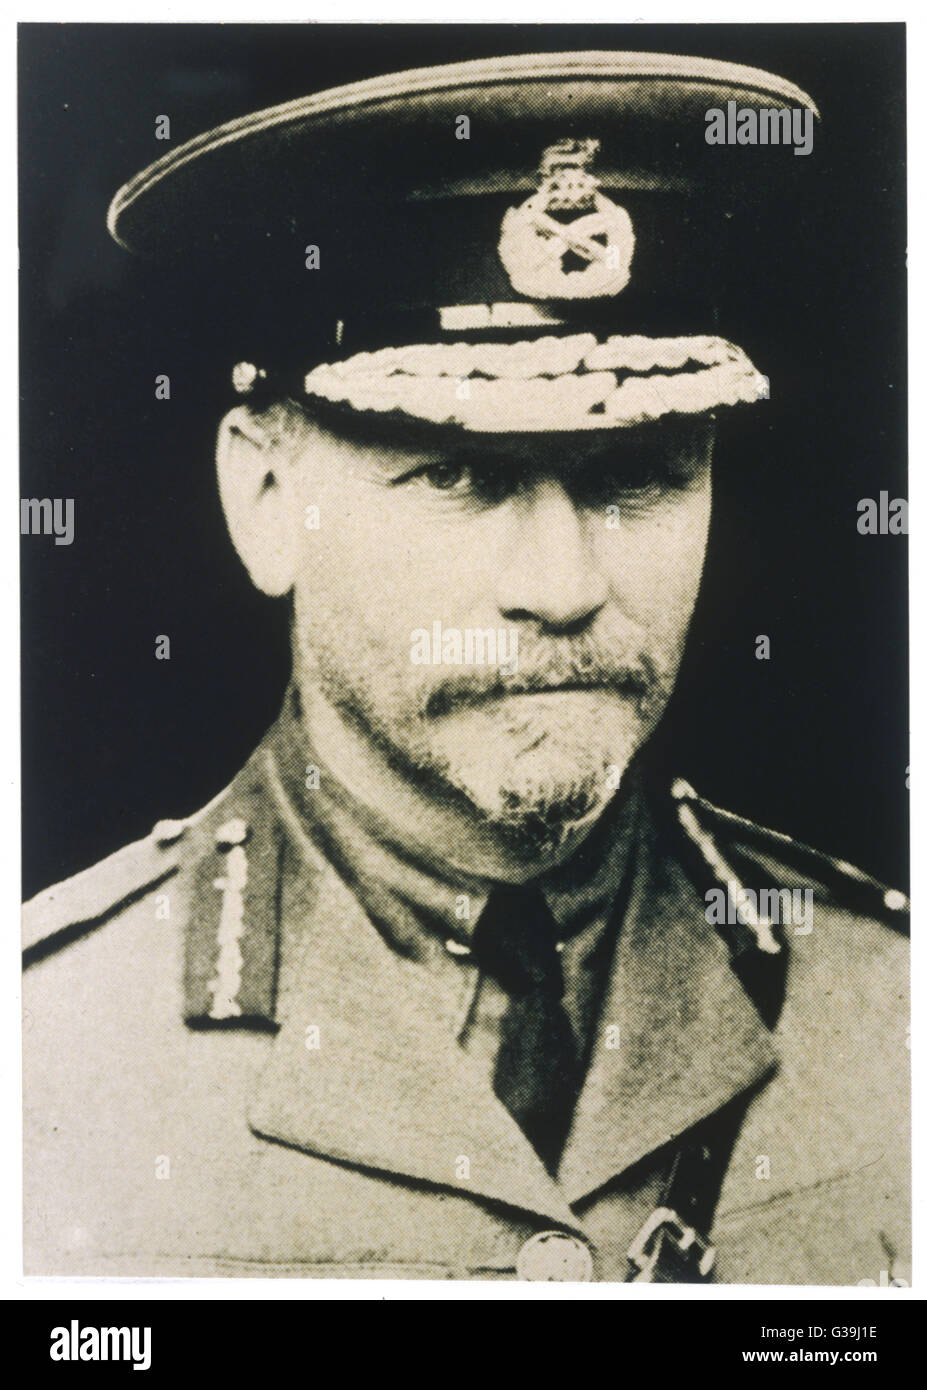 JAN CHRISTIAN SMUTS  South African General and statesman       Date: 1870 - 1950 - Stock Image